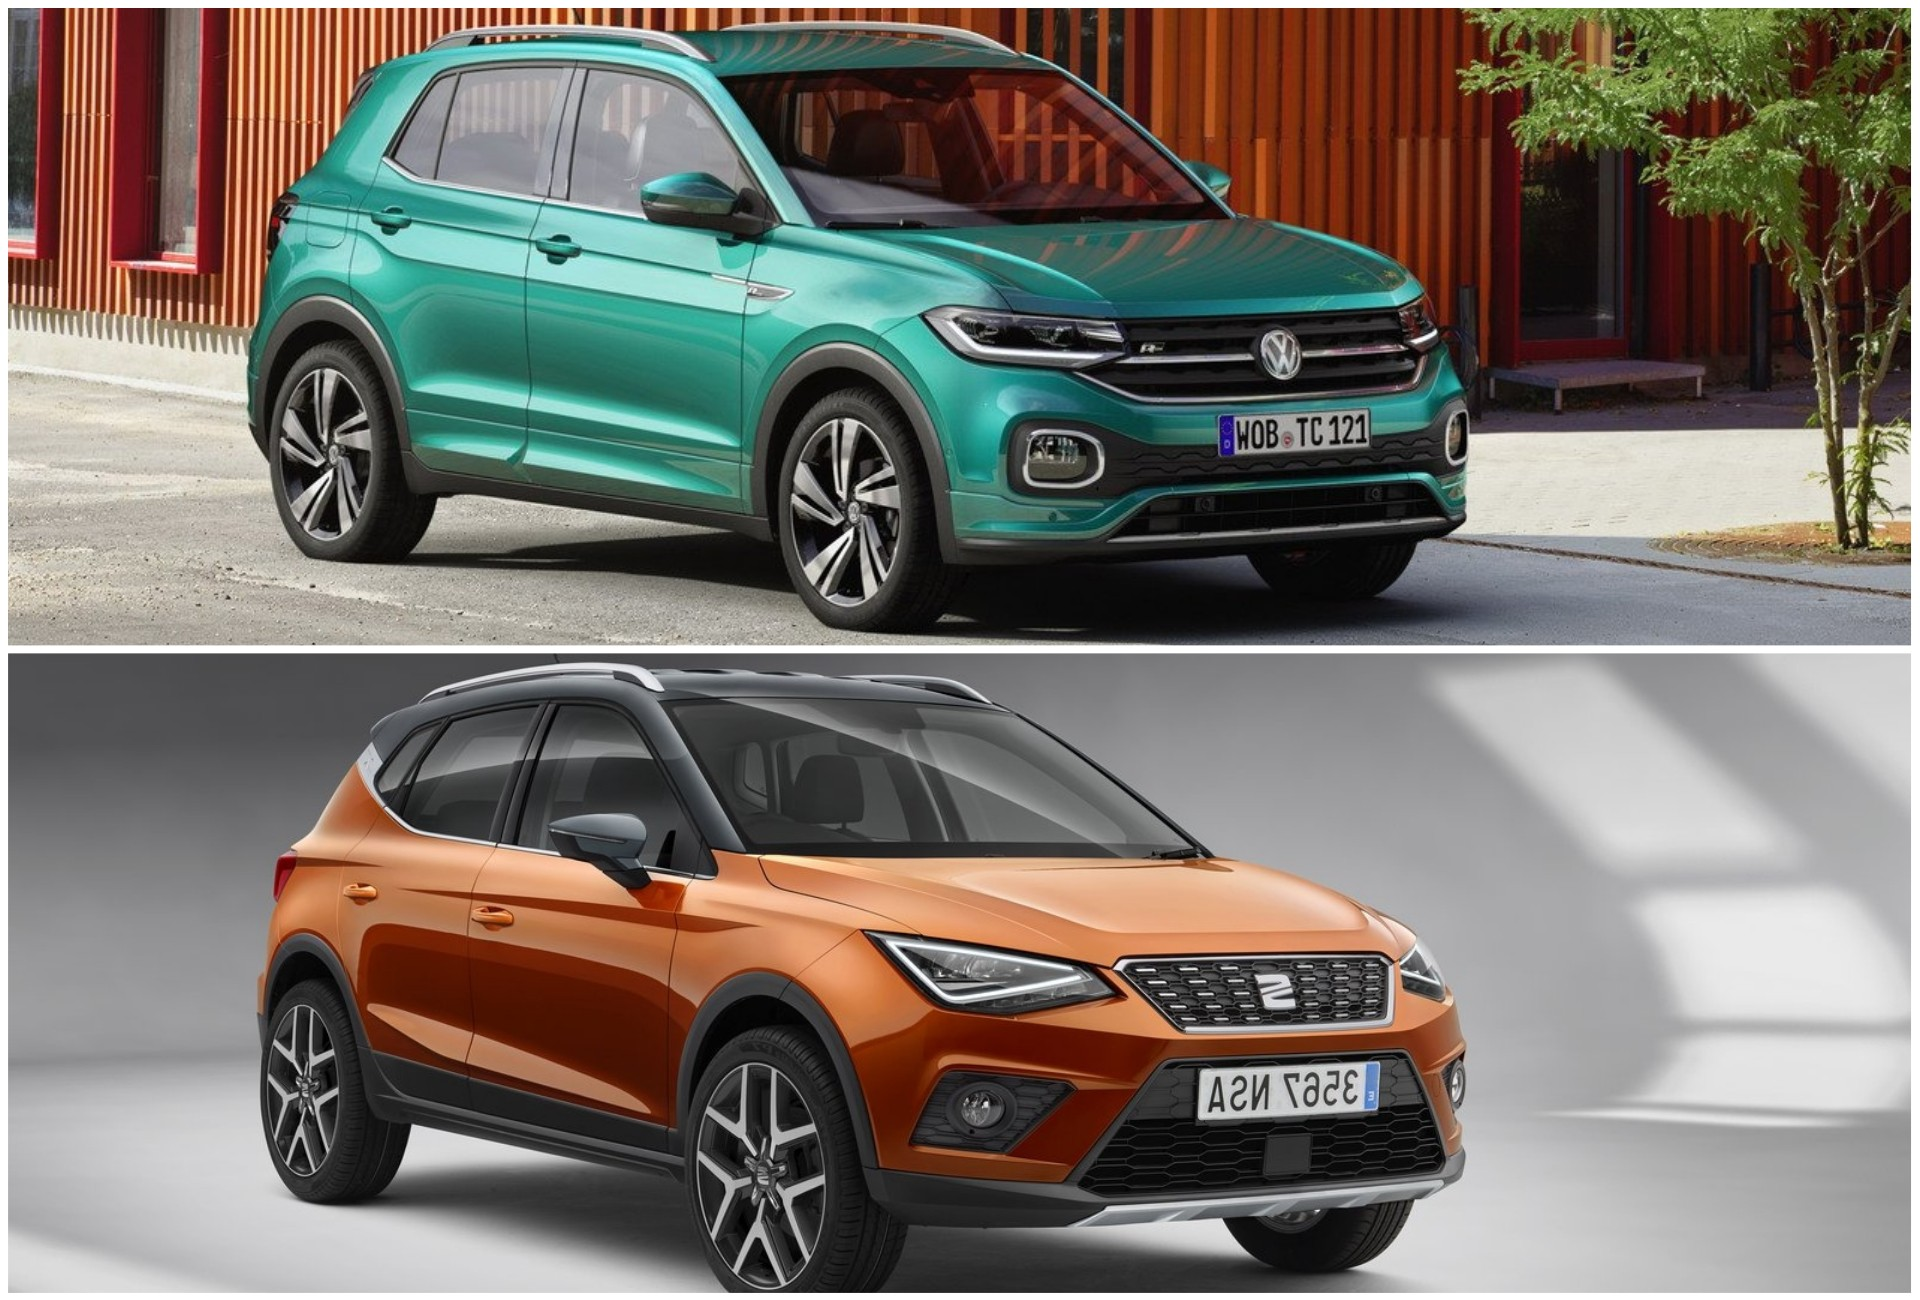 2019 vw t cross vs seat arona photo comparison. Black Bedroom Furniture Sets. Home Design Ideas